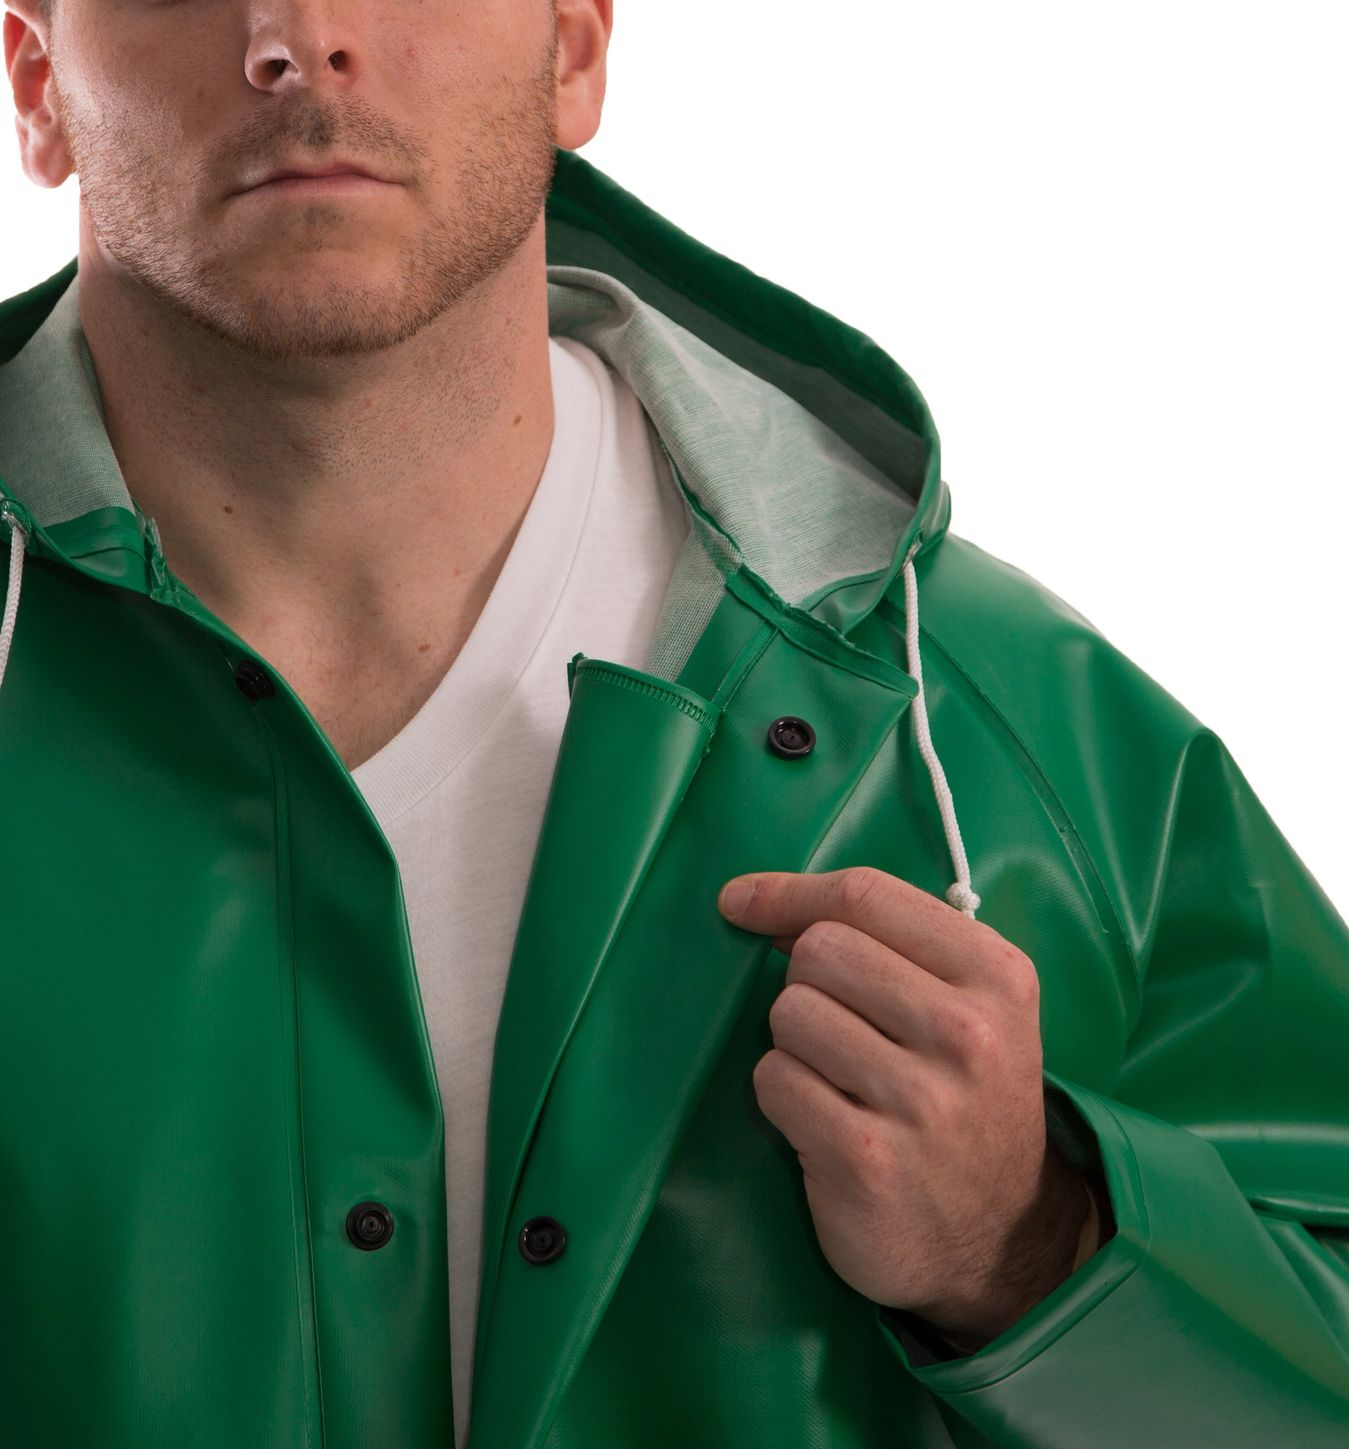 tingley-j41108-safetyflex-flame-resistant-jacket-pvc-coated-chemical-resistant-with-attached-hood-example.jpg